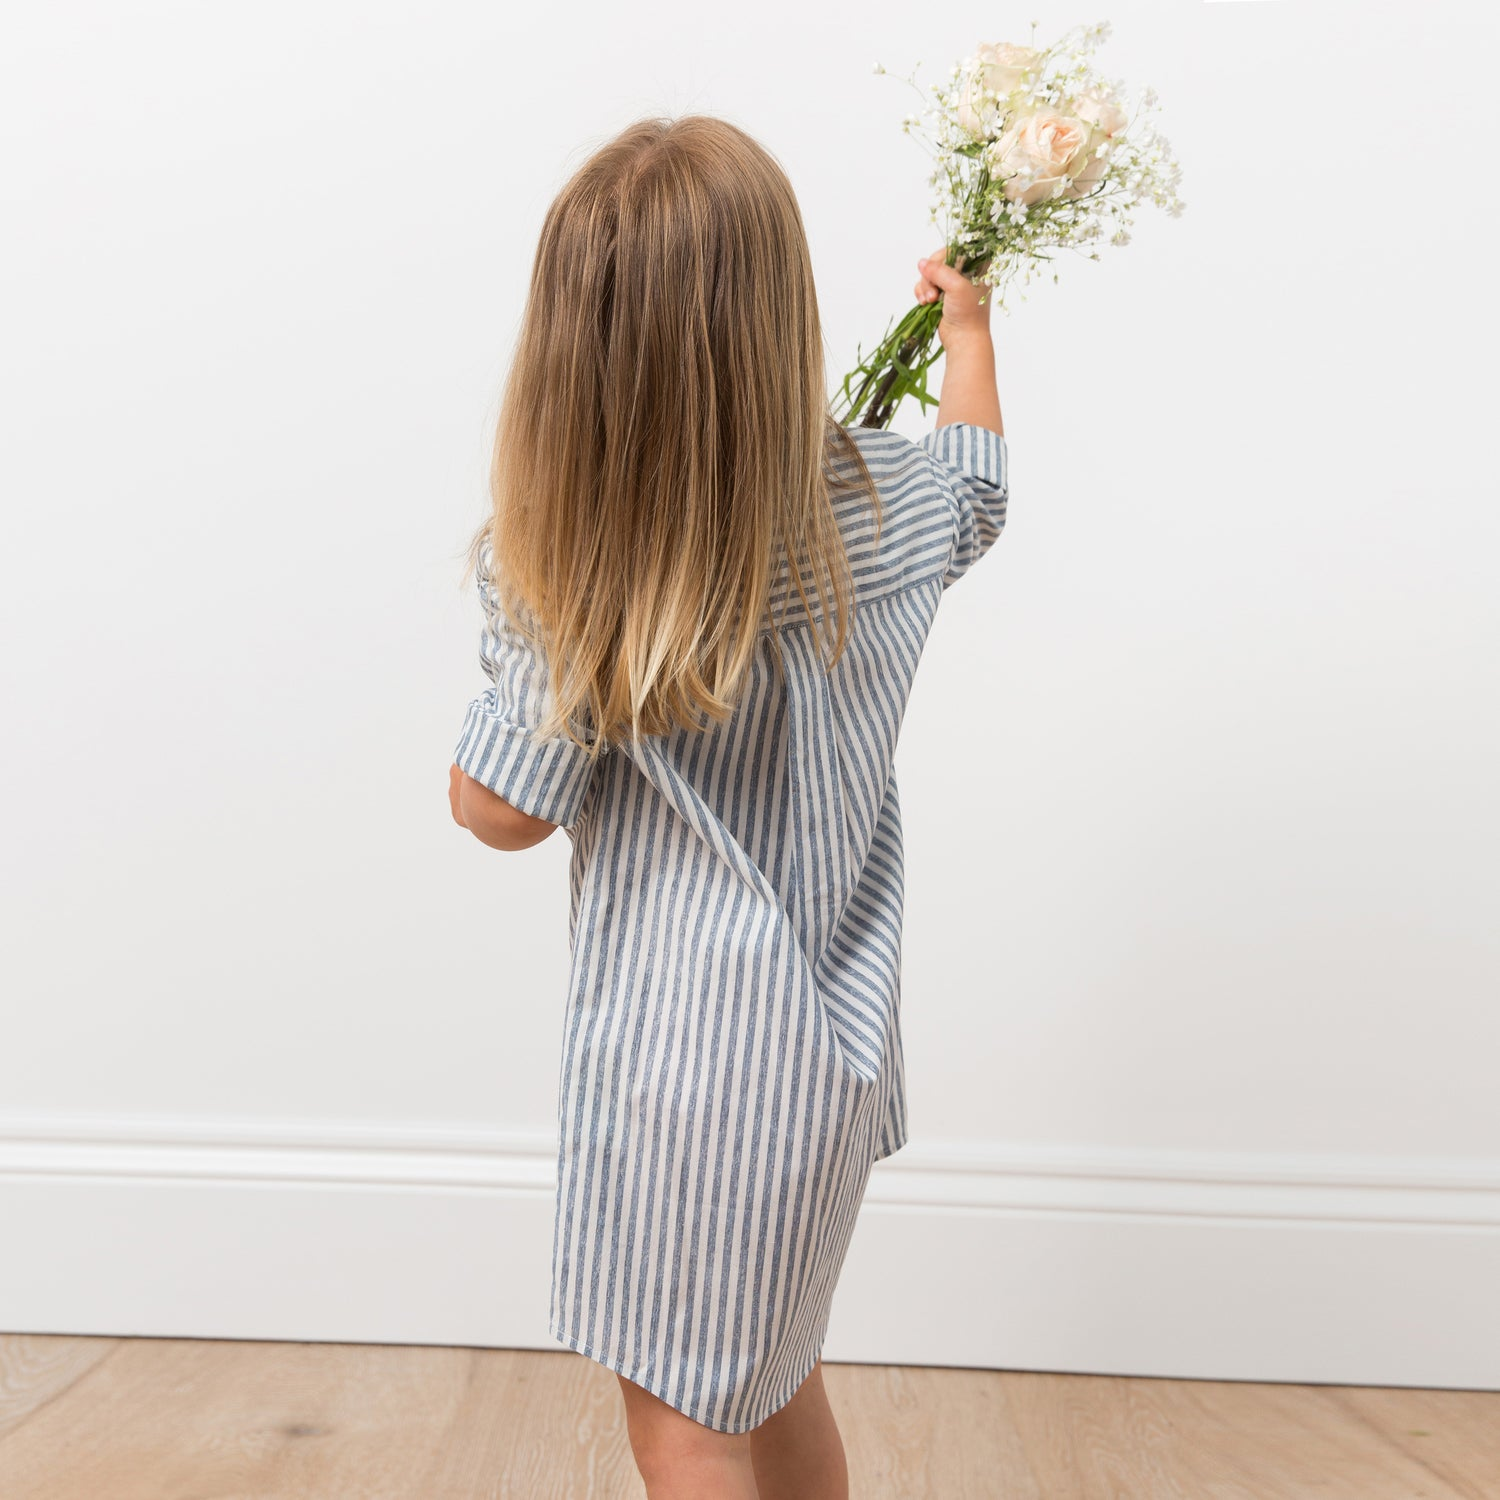 Cecille Flower Girl Dress